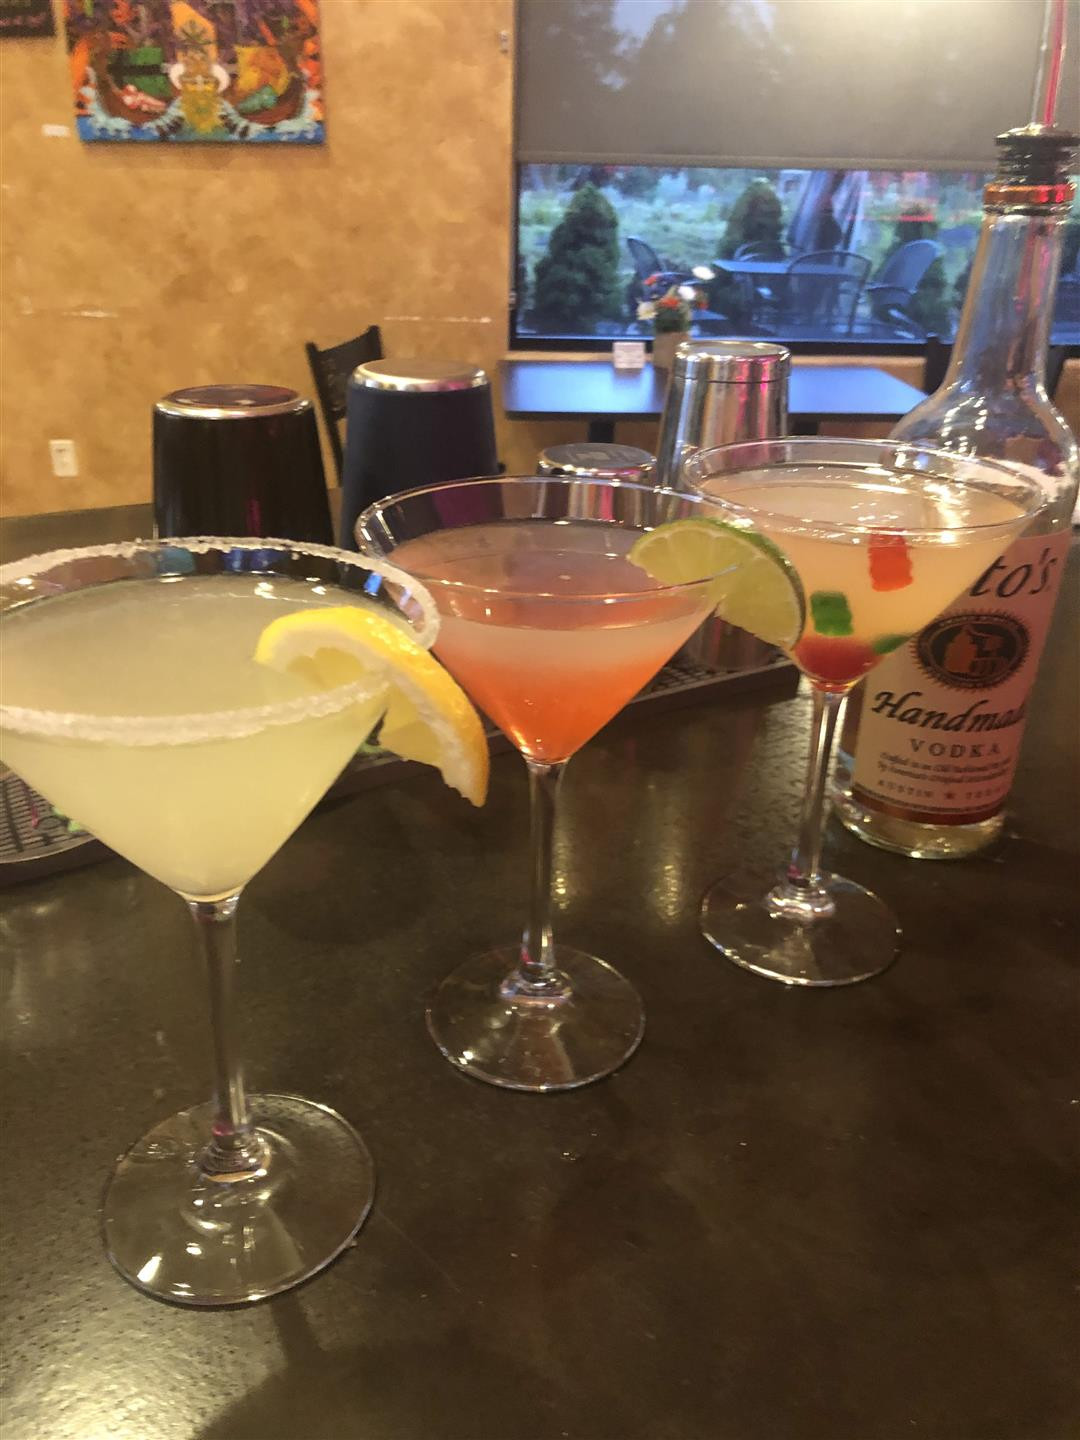 Three martinis in a row next to a bottle of tito's